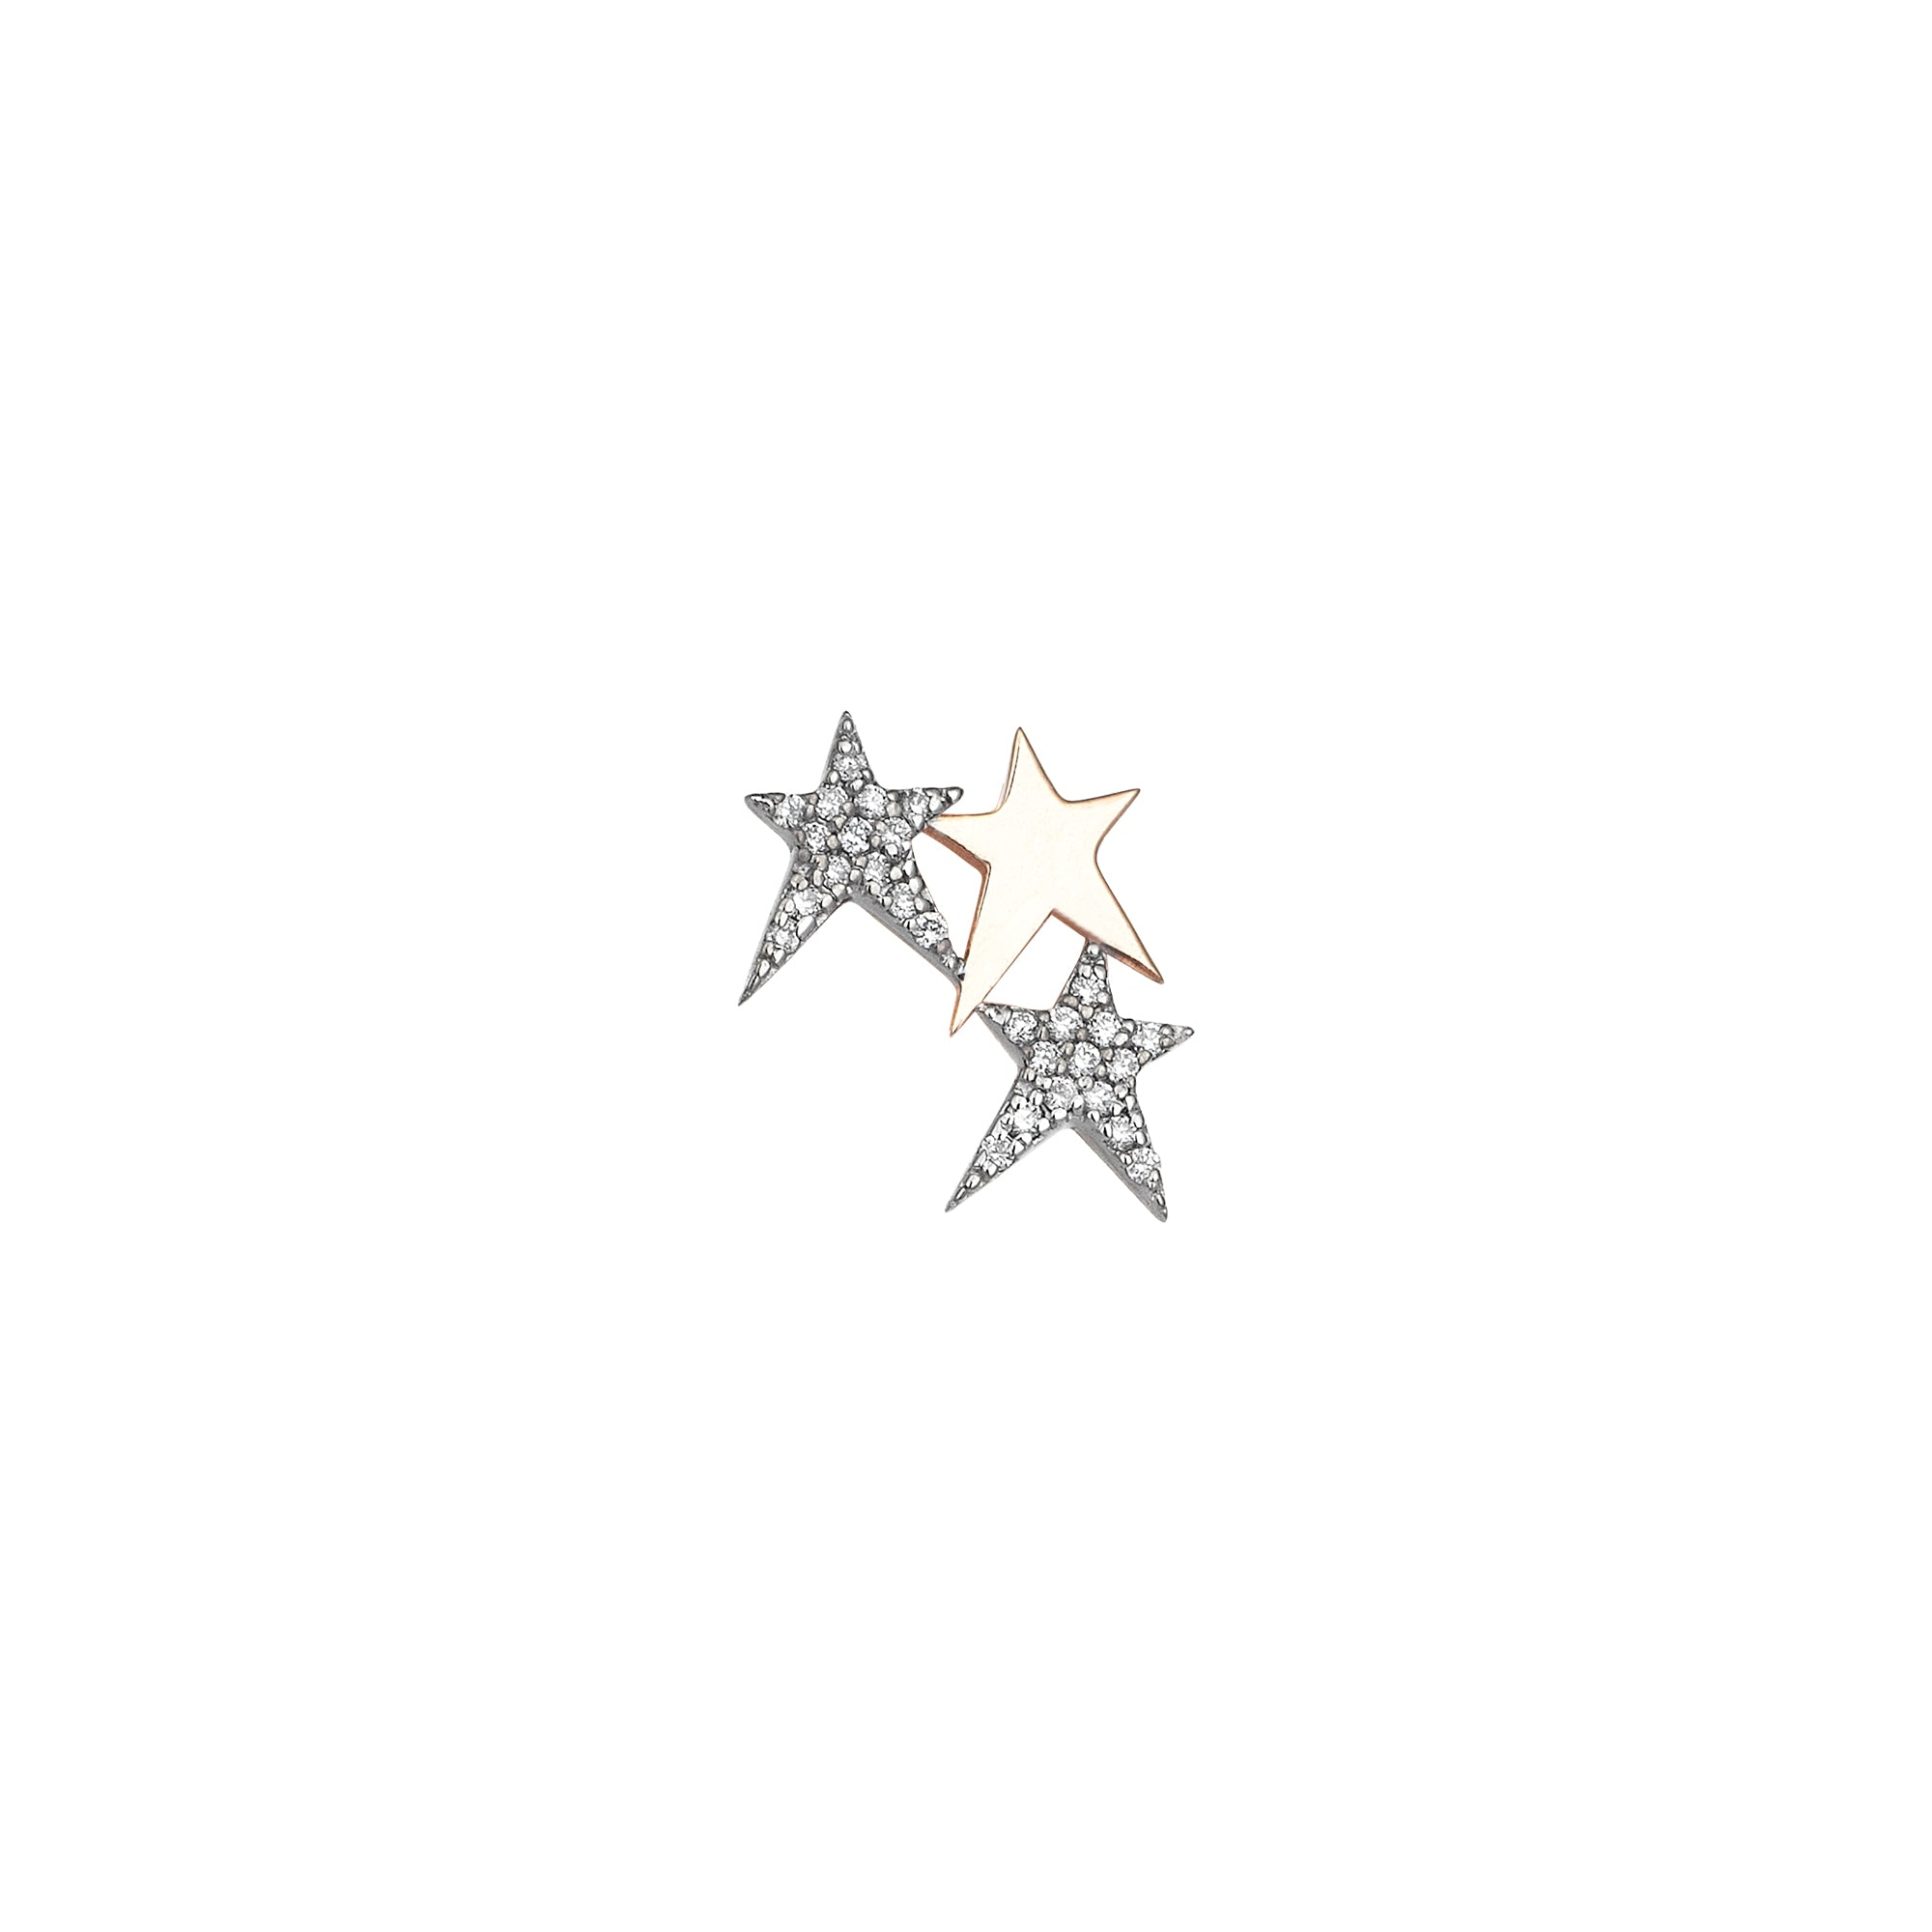 3 Struck Star Earring - Kismet by Milka - Earrings | Broken English Jewelr